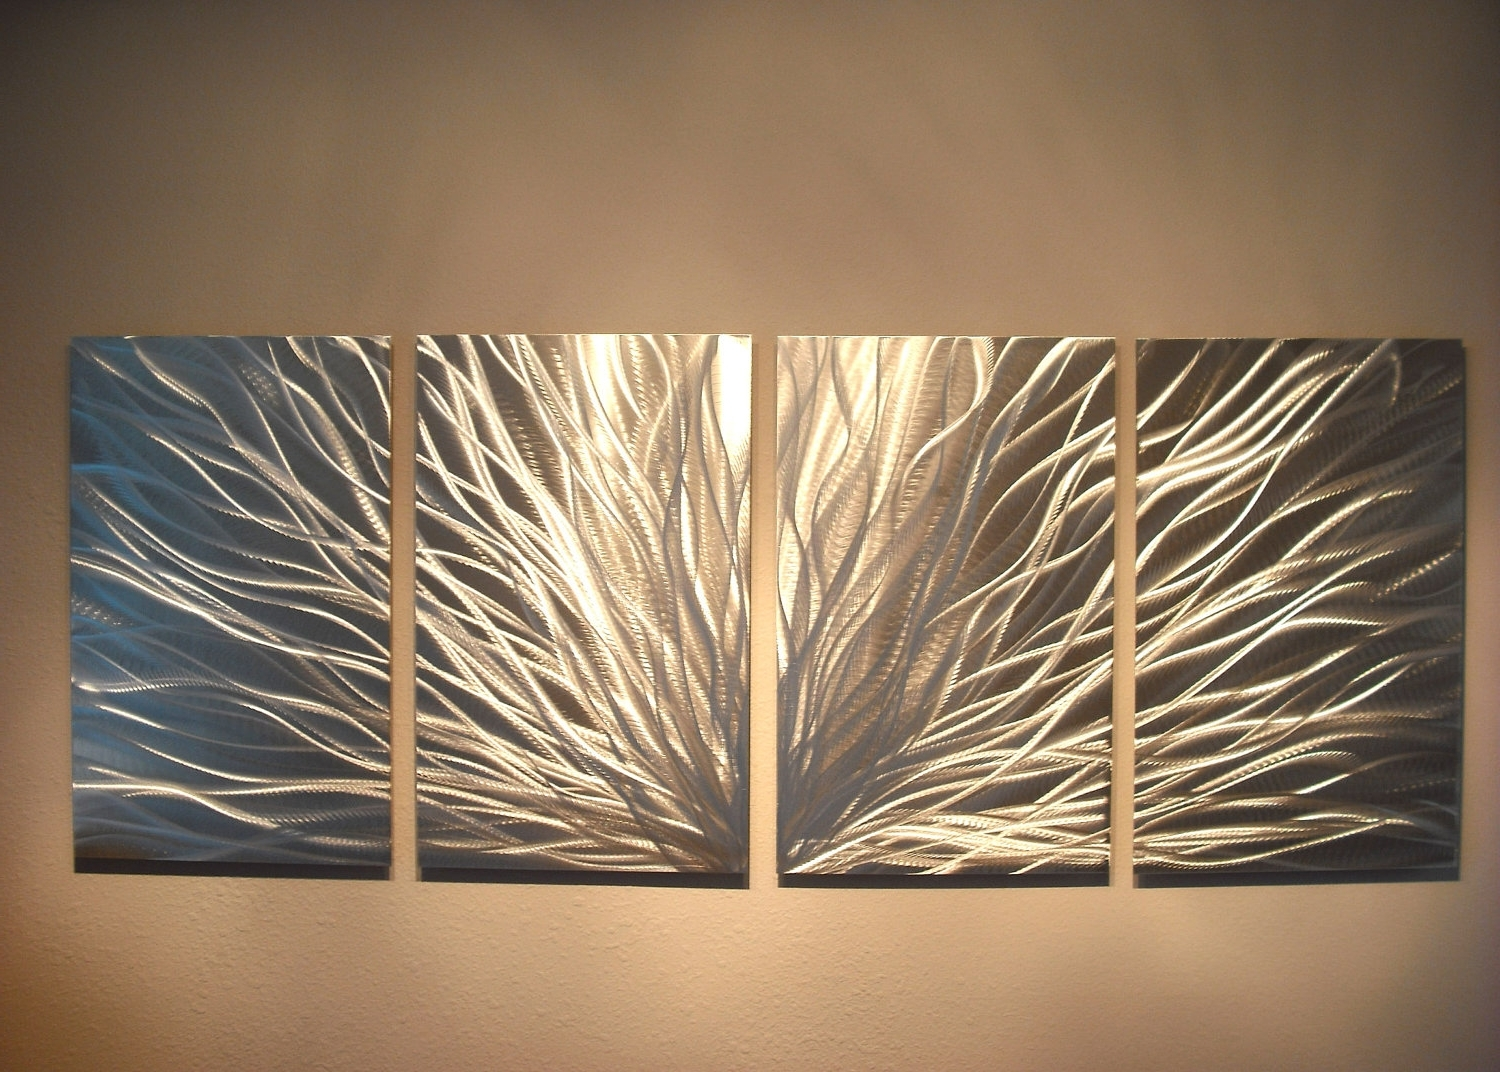 Newest Radiance – Abstract Metal Wall Art Contemporary Modern Decor Regarding Abstract Metal Sculpture Wall Art (Gallery 13 of 15)